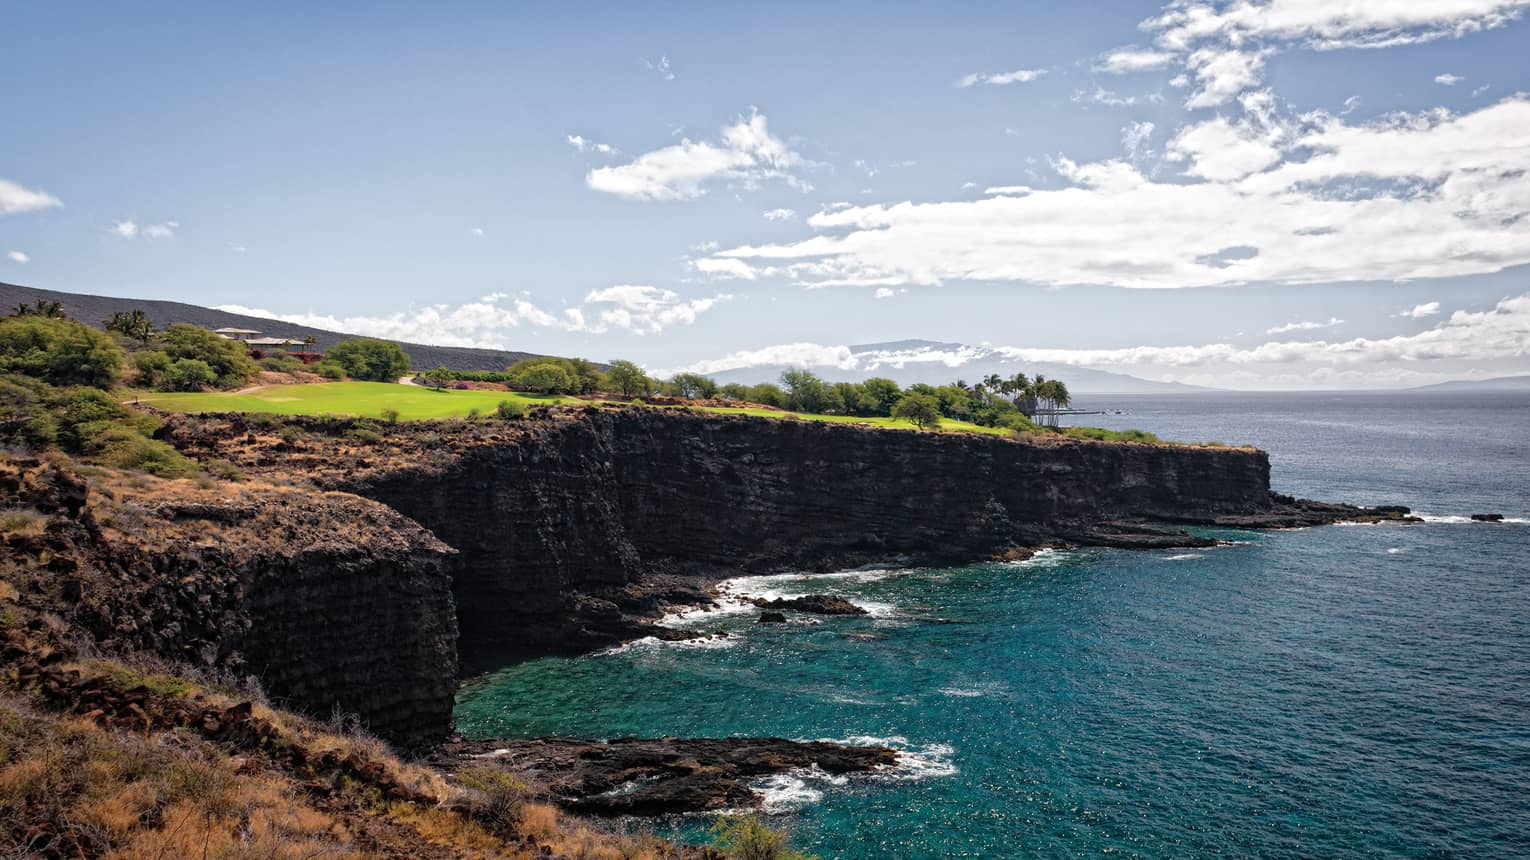 Sweeping view of Manele Golf Course on high cliffs over ocean